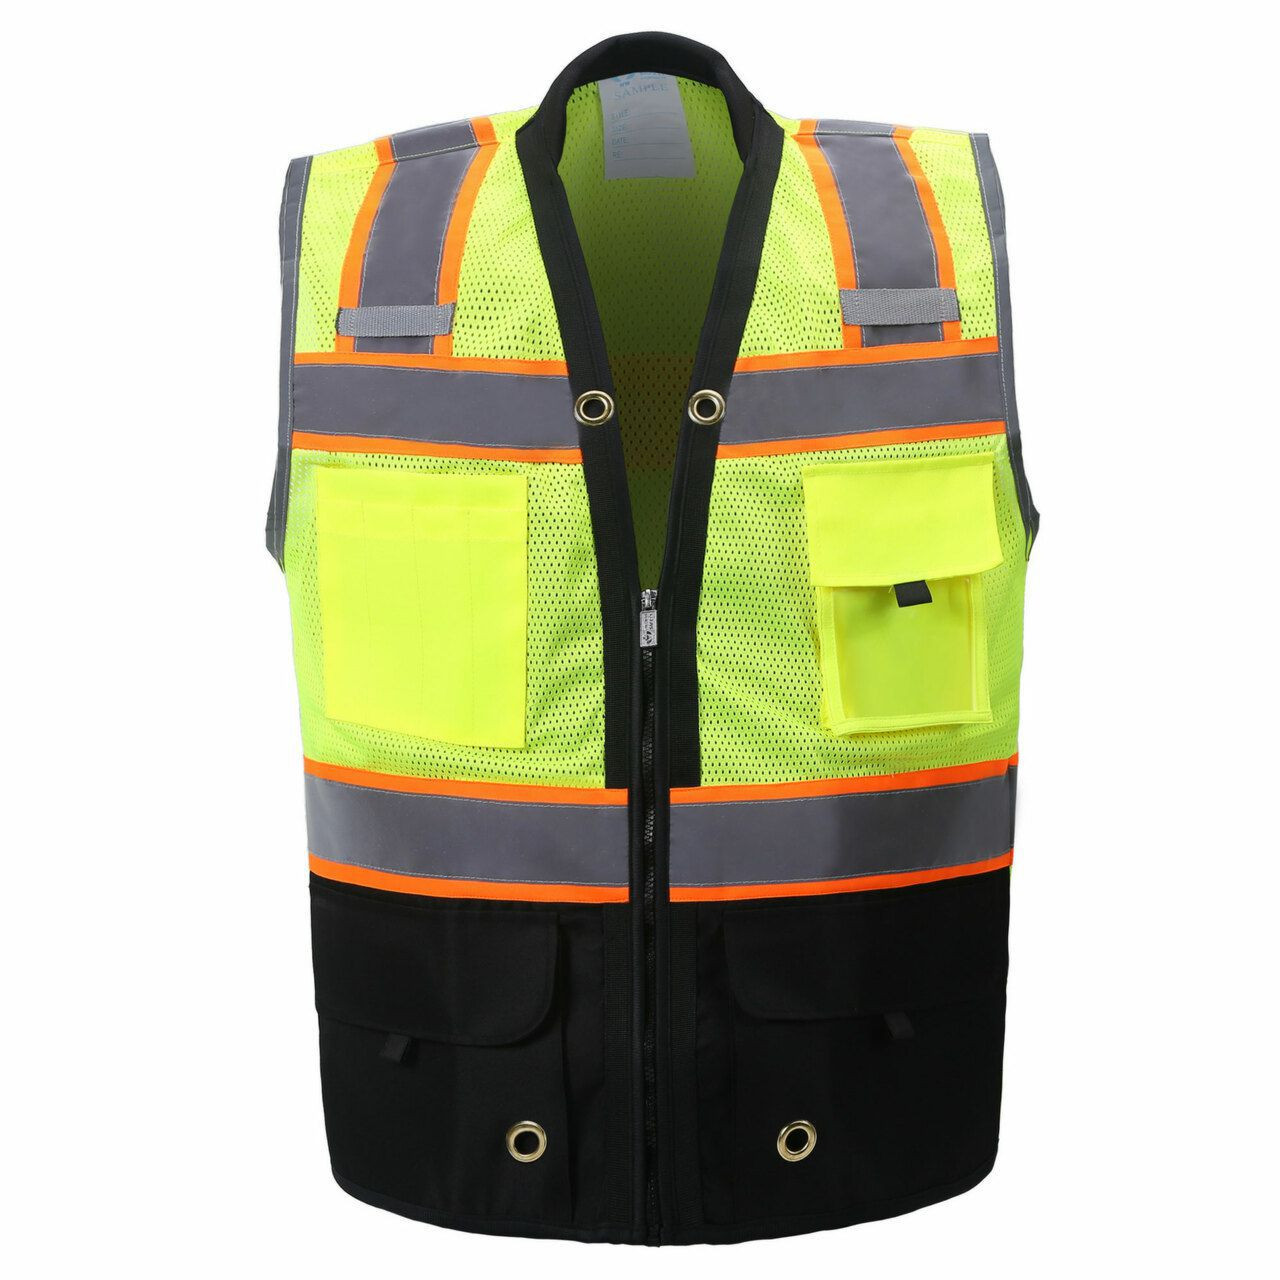 Two Tone Class 2 Premium Surveyors Safety Vest with Black Solid Bottom